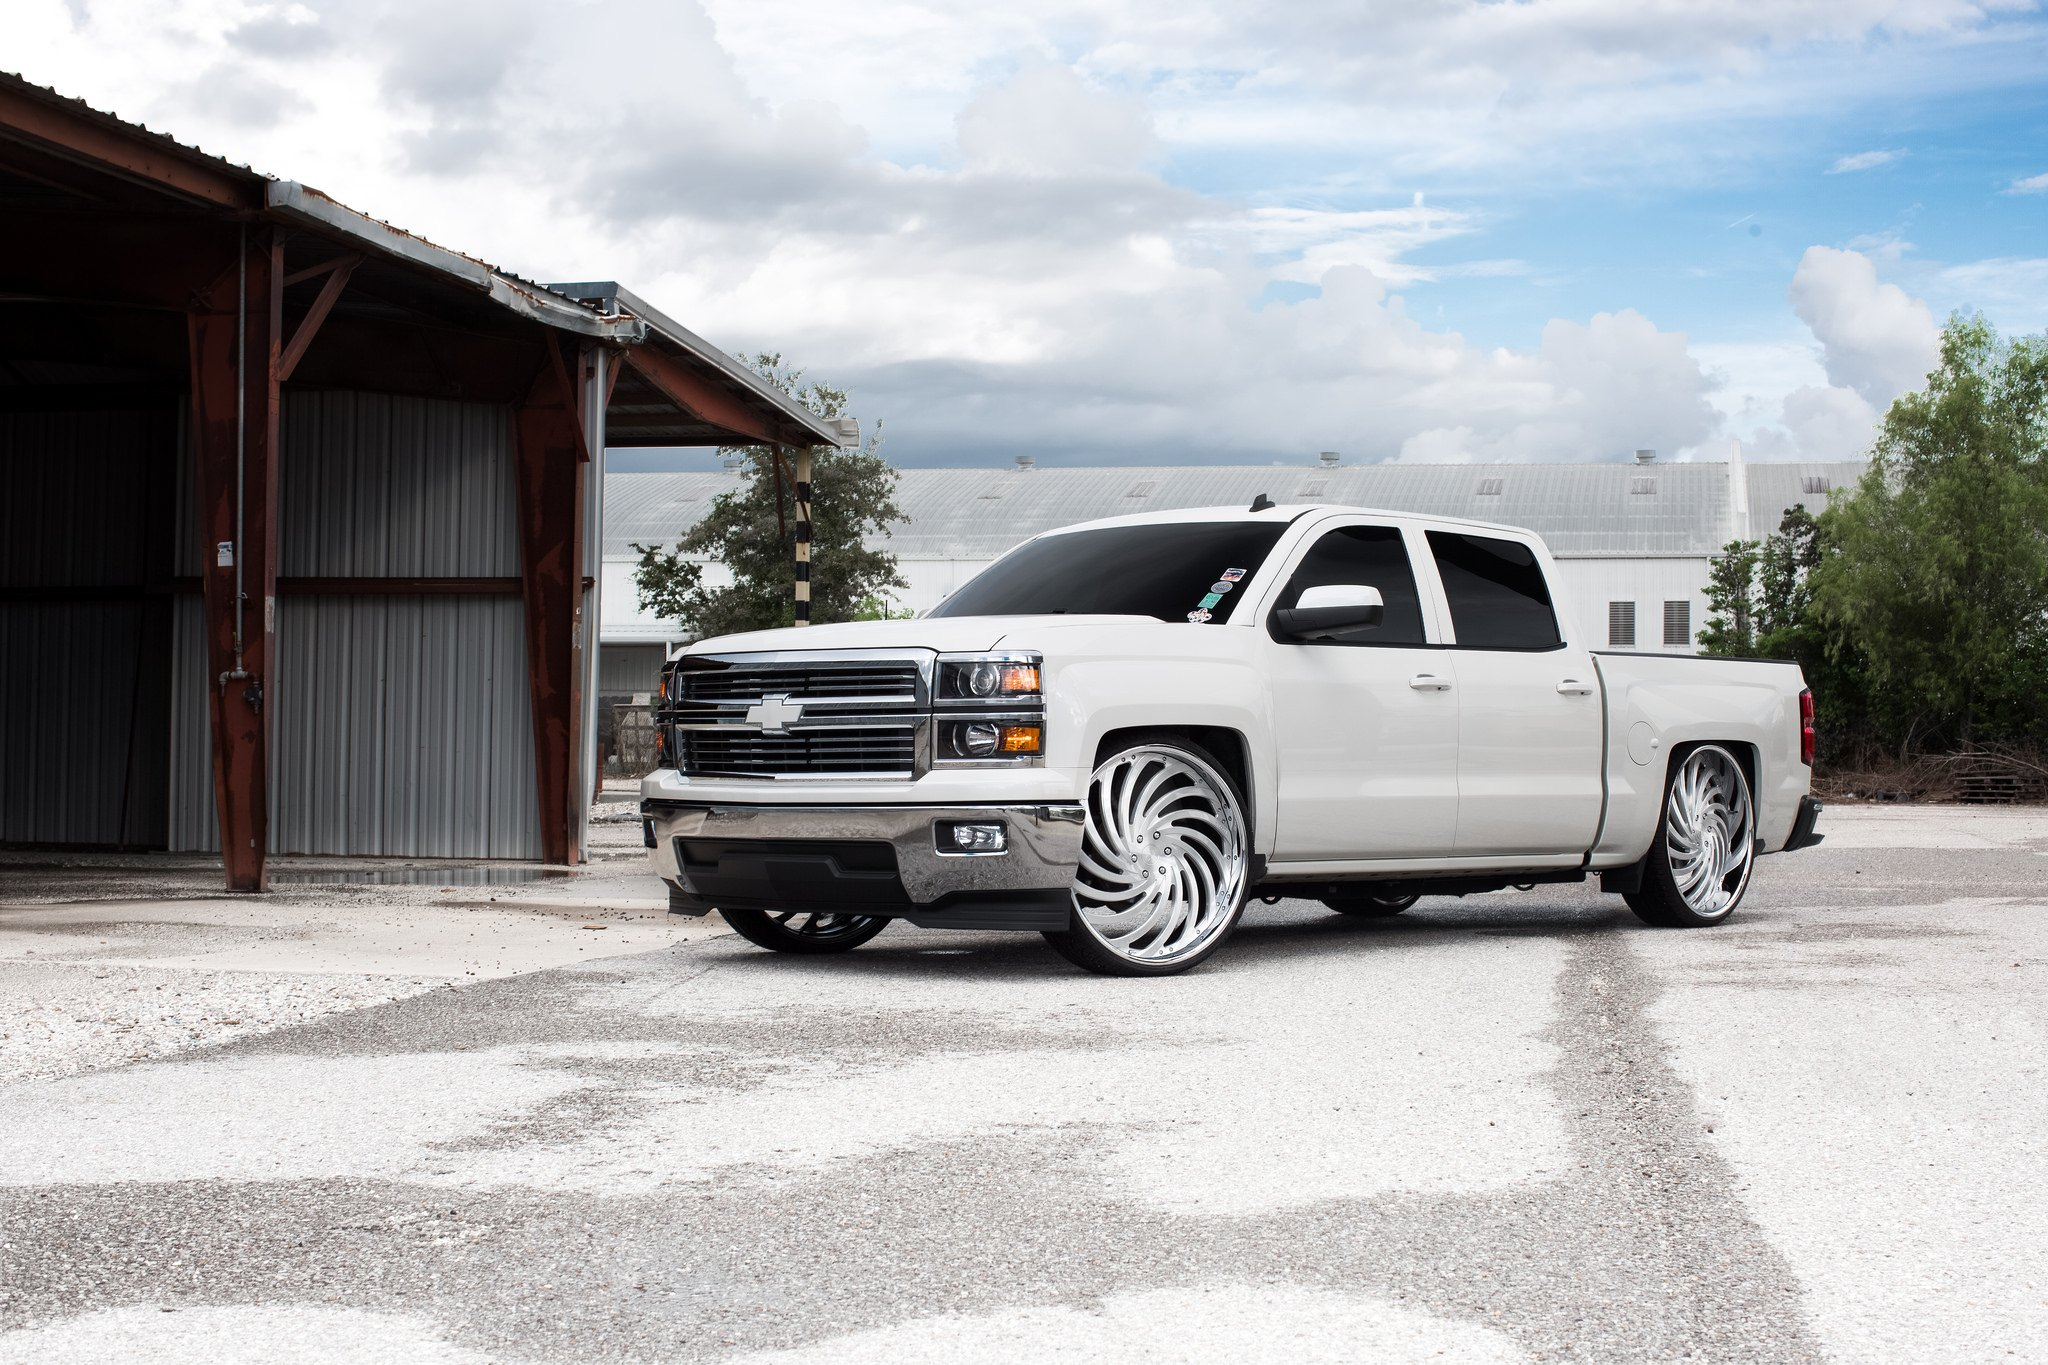 Ace Of Spades Custom White Chevy Silverado Carid Com Gallery